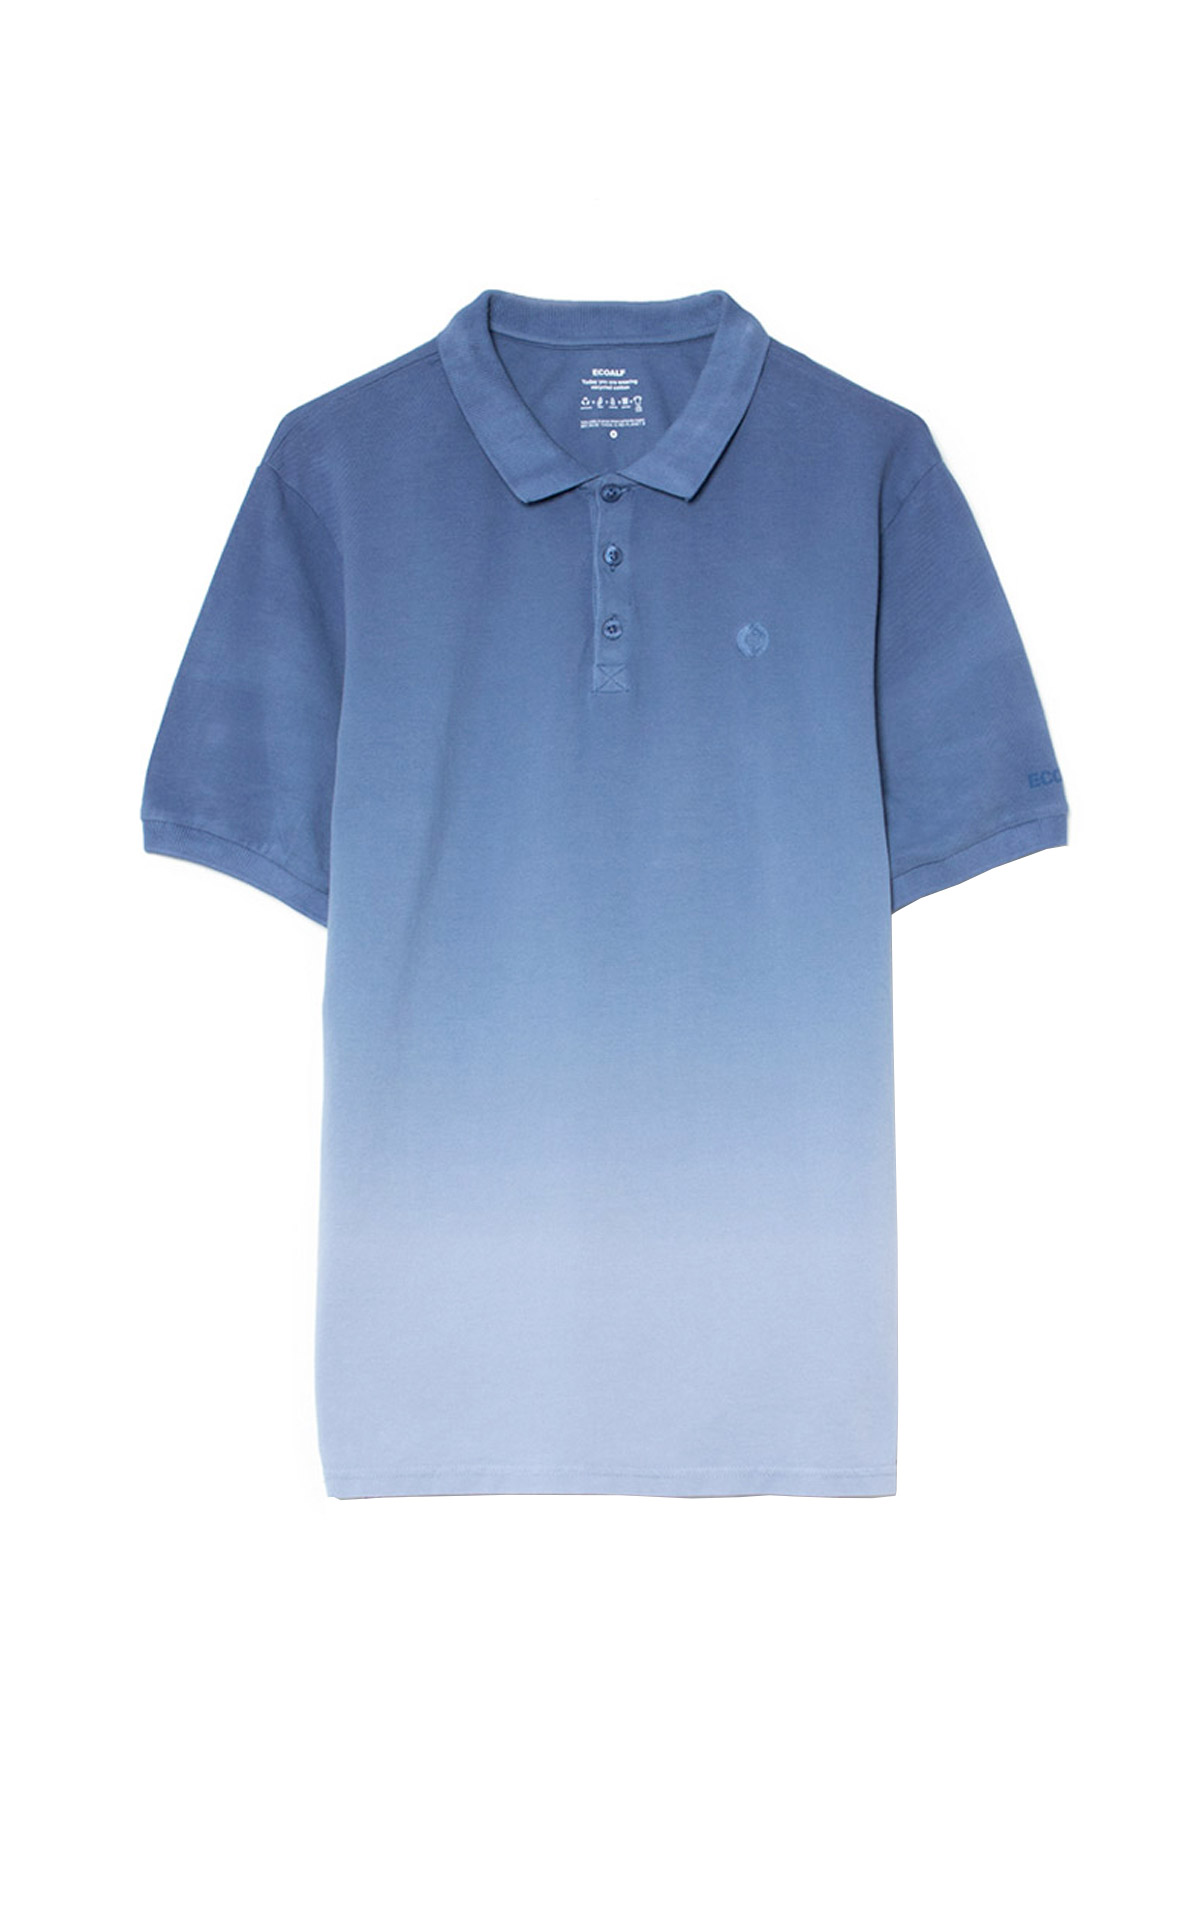 Polo degradado azul Ecoalf